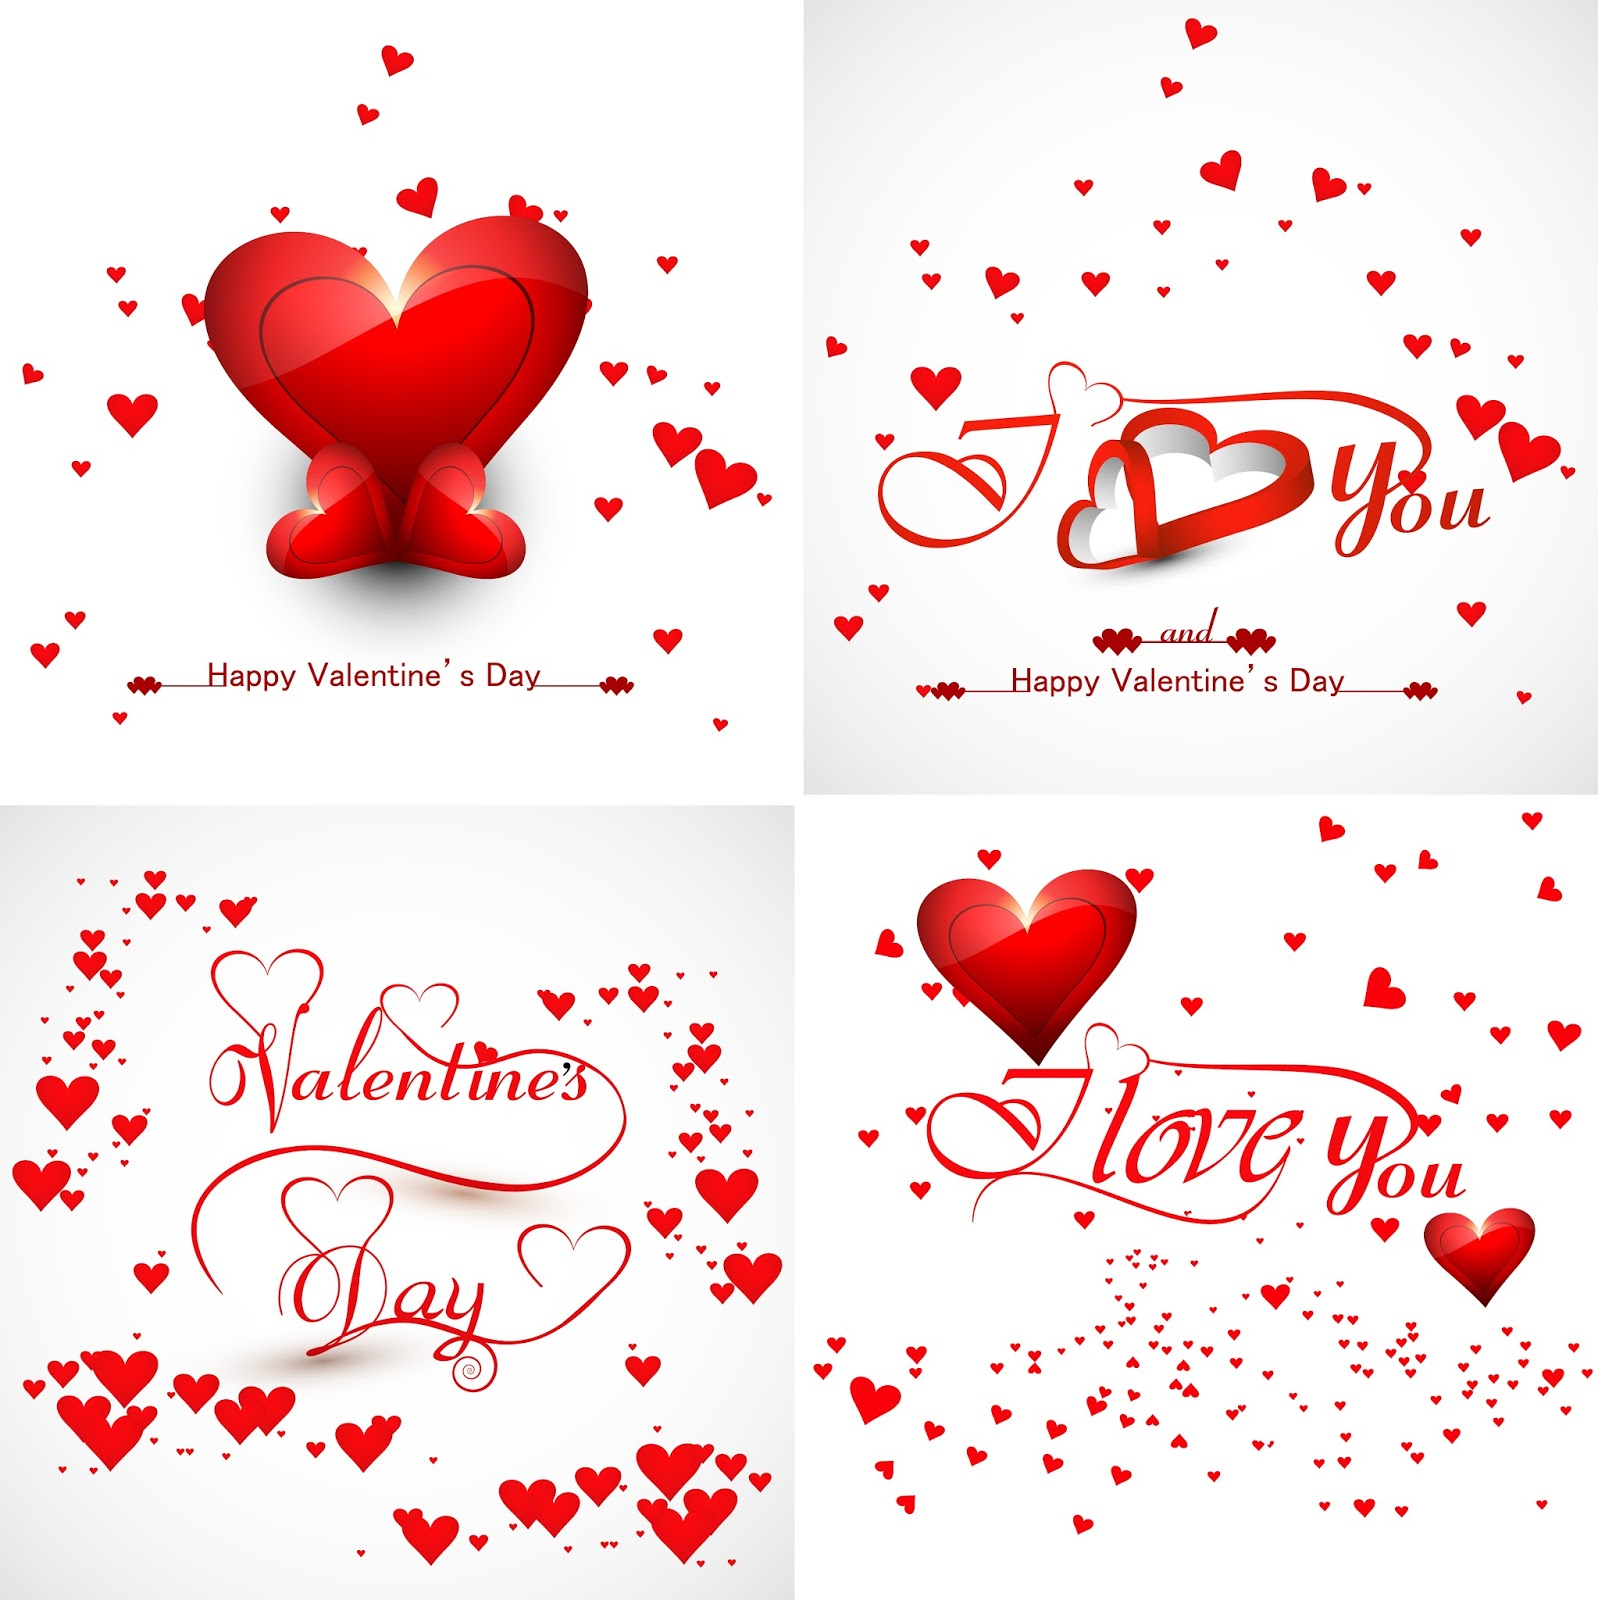 valentines day clip art for friends - photo #39